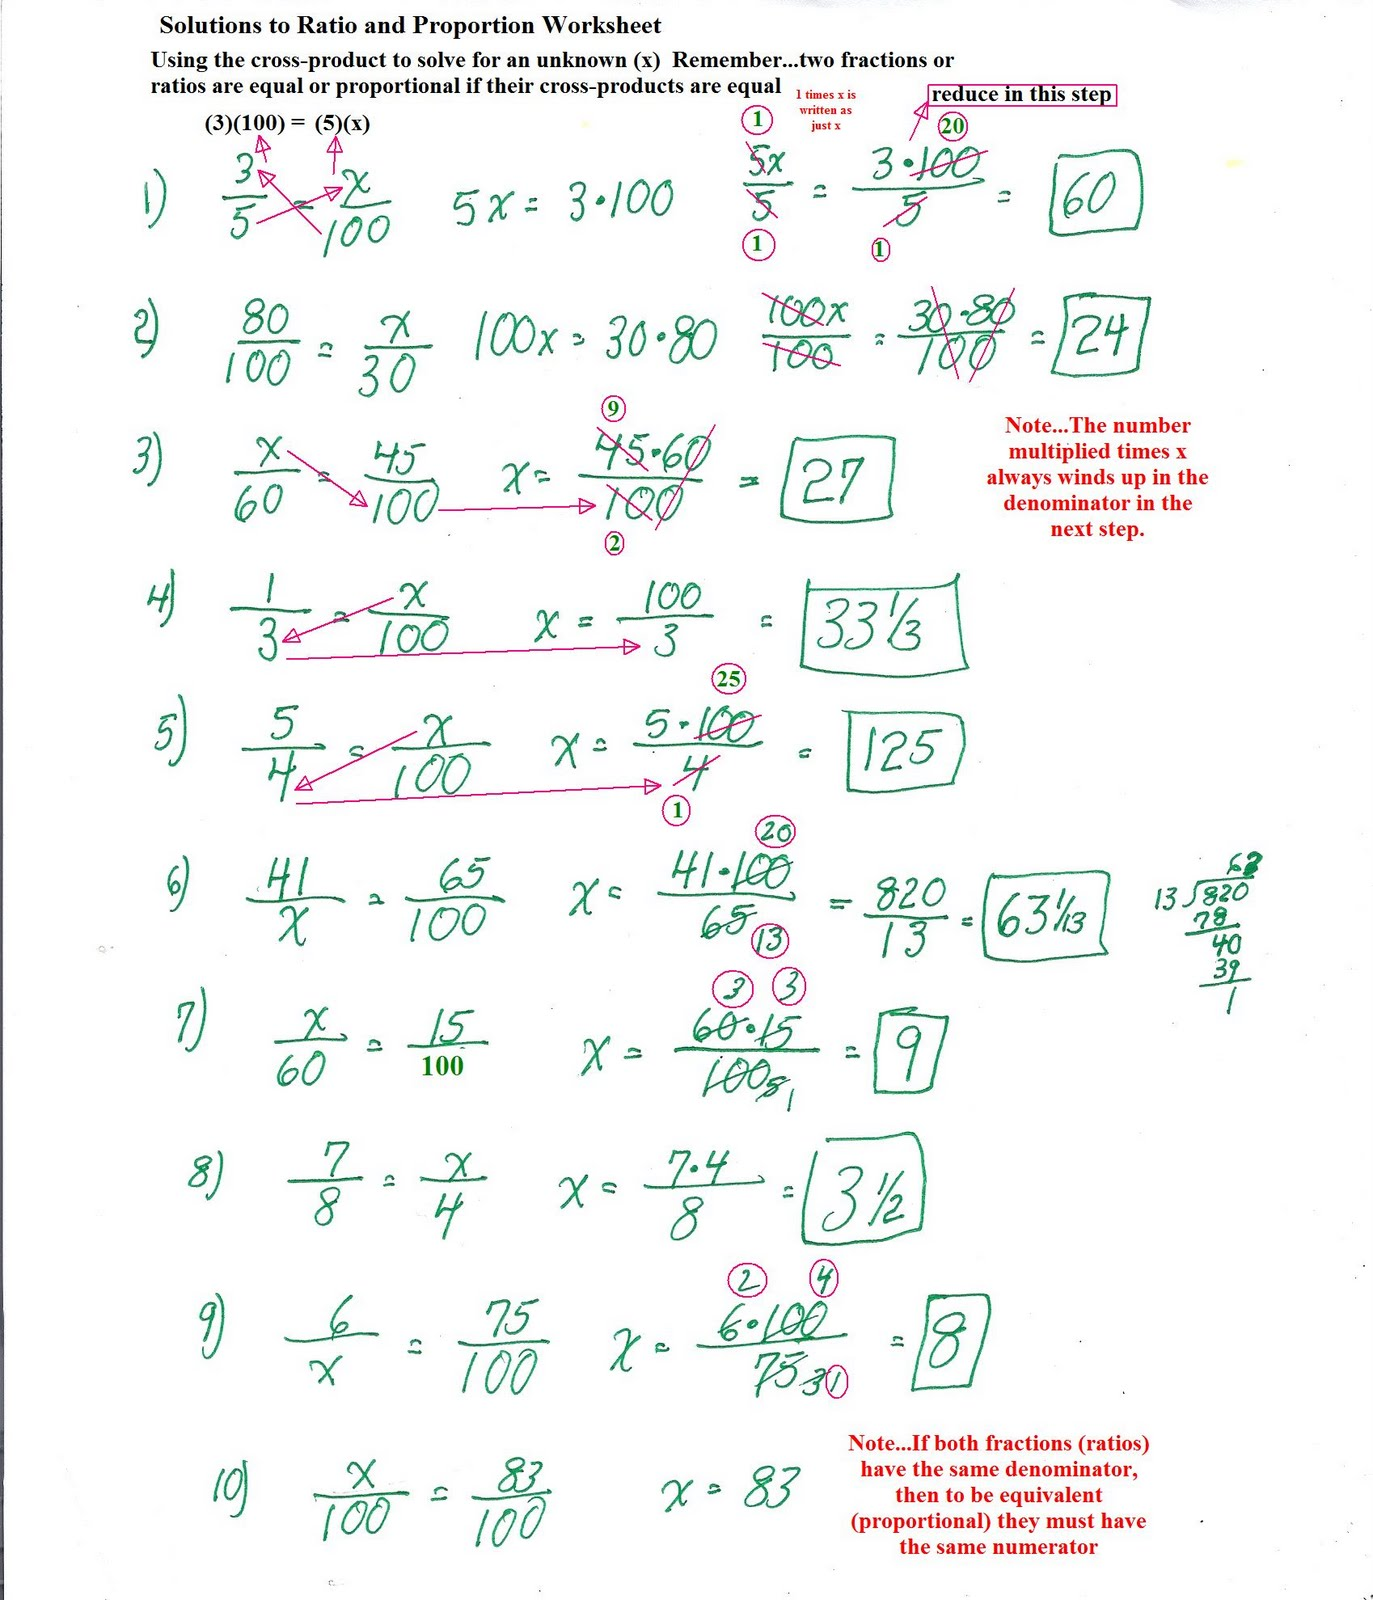 worksheet Math Worksheets Ratios cobb adult ed math ratio and proportion problems solutions solutions